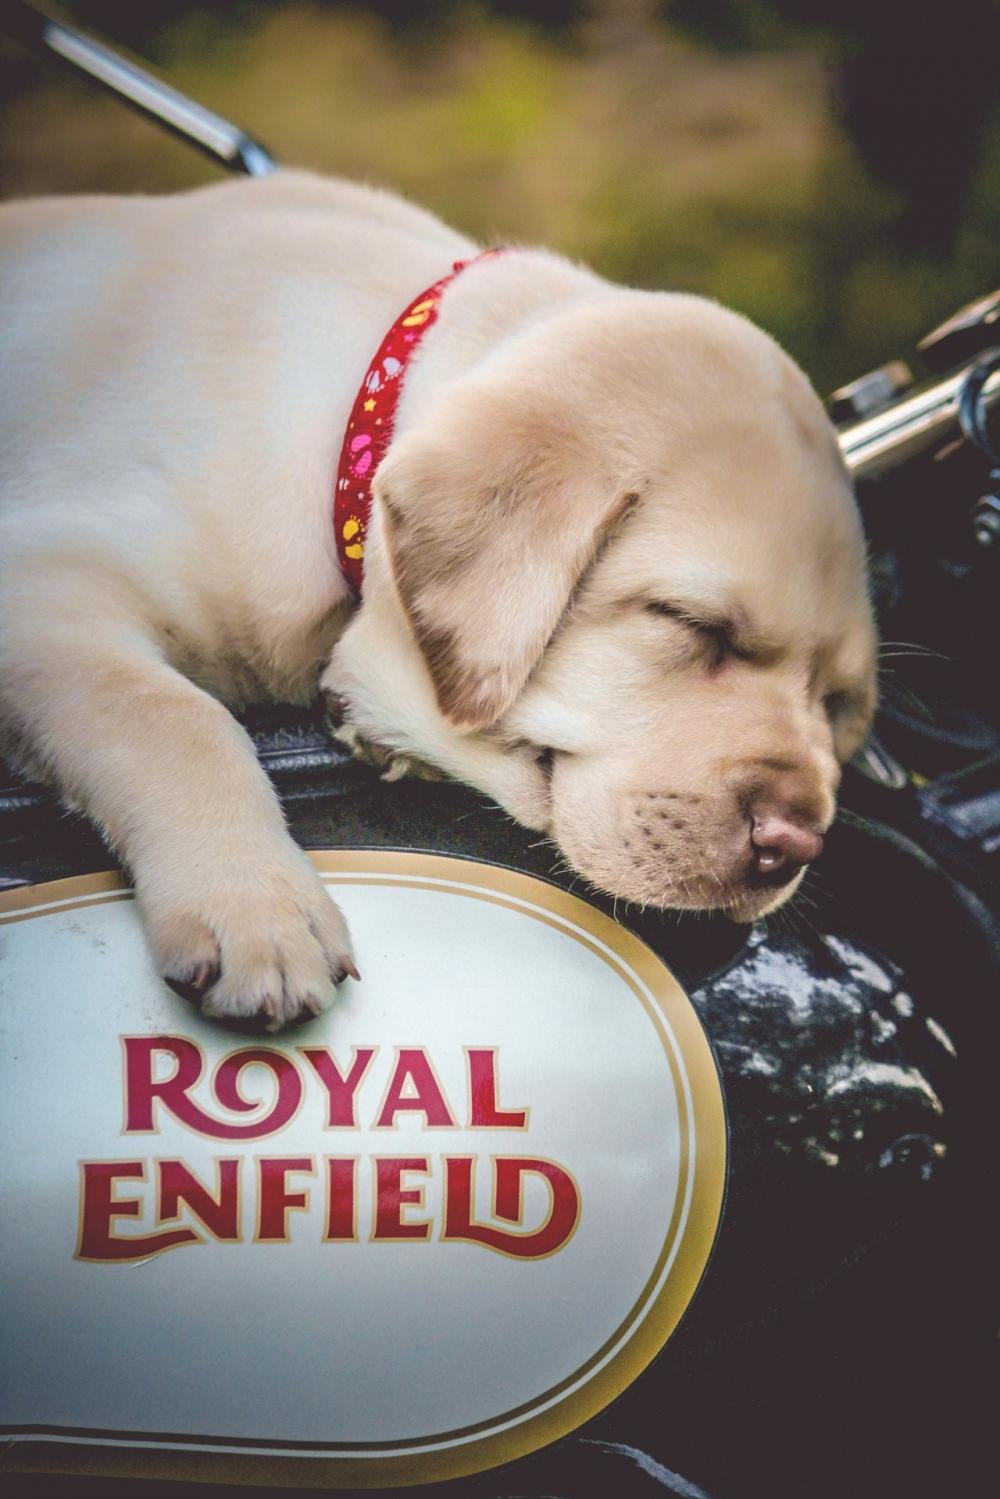 The Weekend Leader - Eicher Motors now offers customised Royal Enfield motorcycles